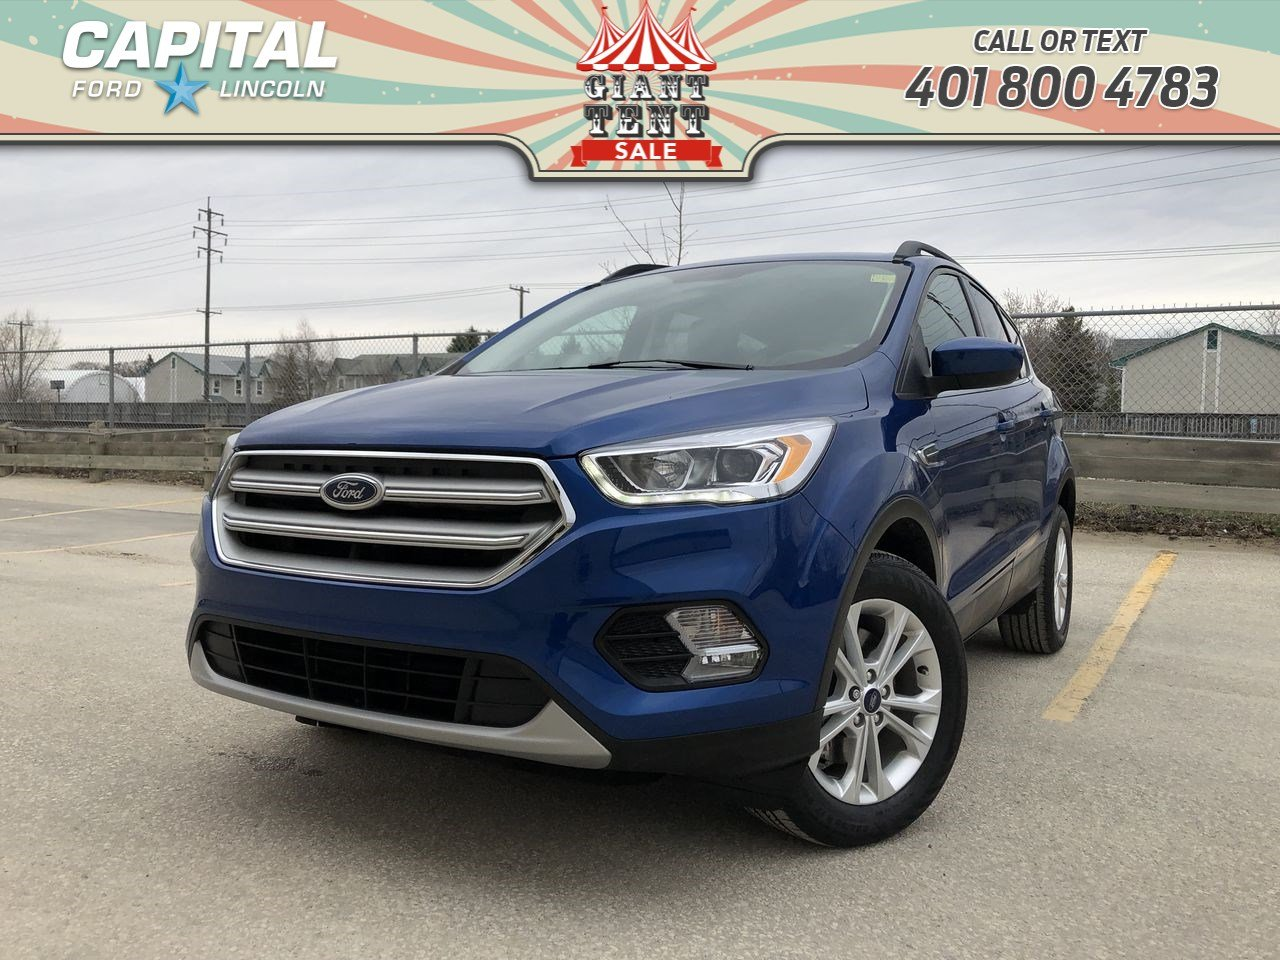 Pre-Owned 2018 Ford Escape SEL 4WD LEATHER ASK US ABOUT THE 1.9% FINANCE